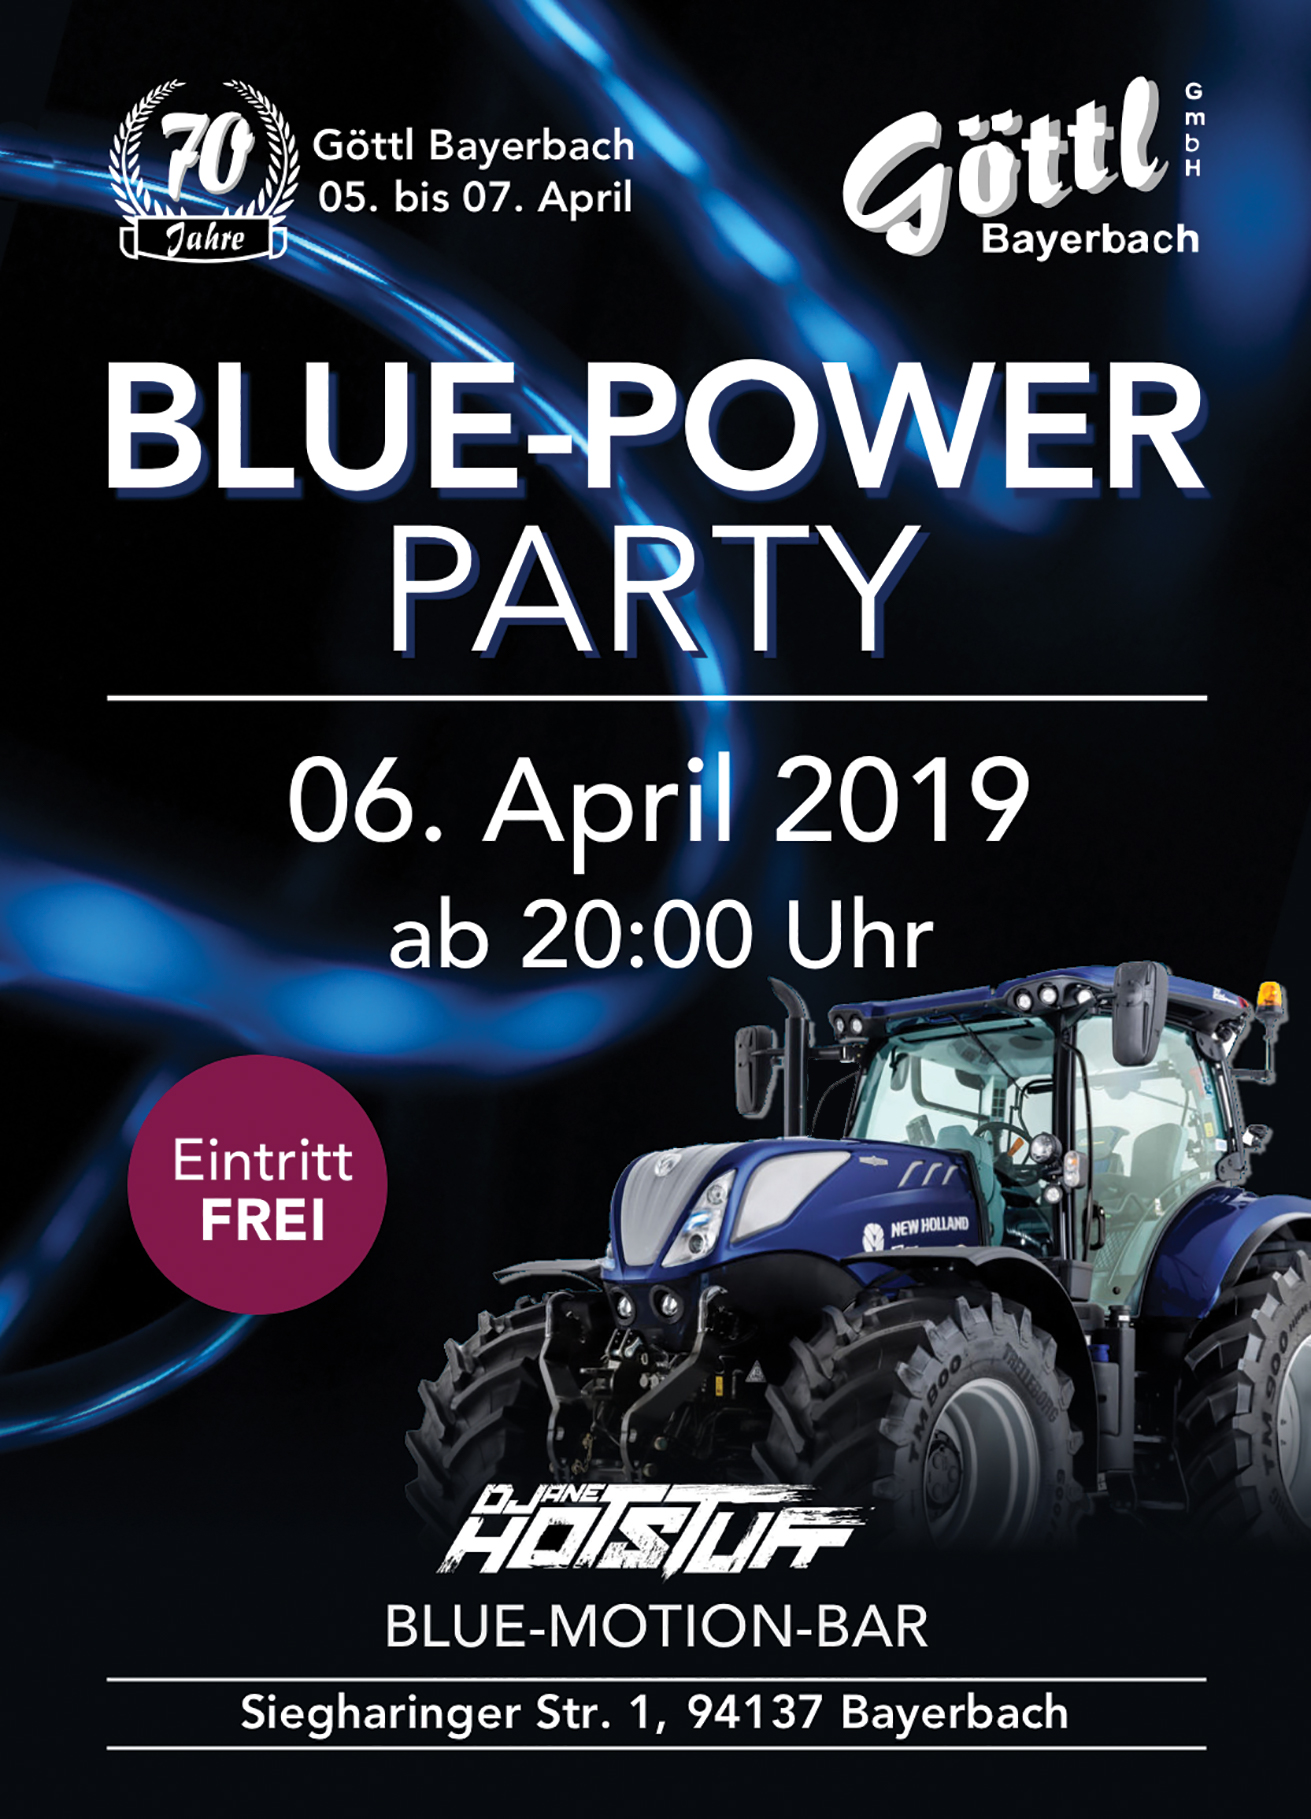 Blue-Power Party